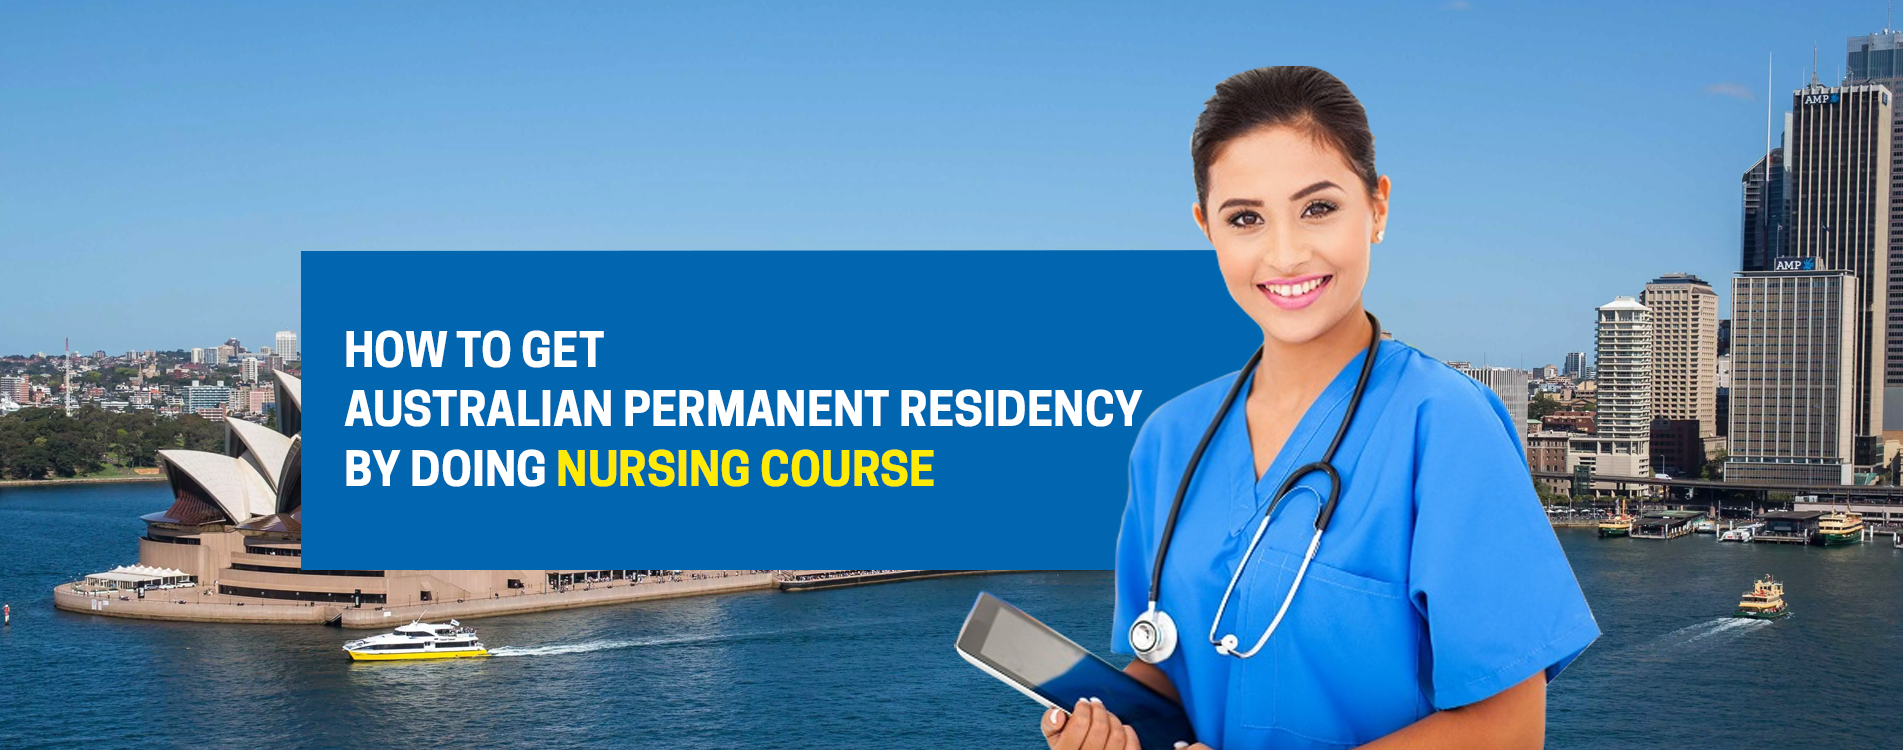 How to Get Australian Permanent Residency by Doing Nursing Course